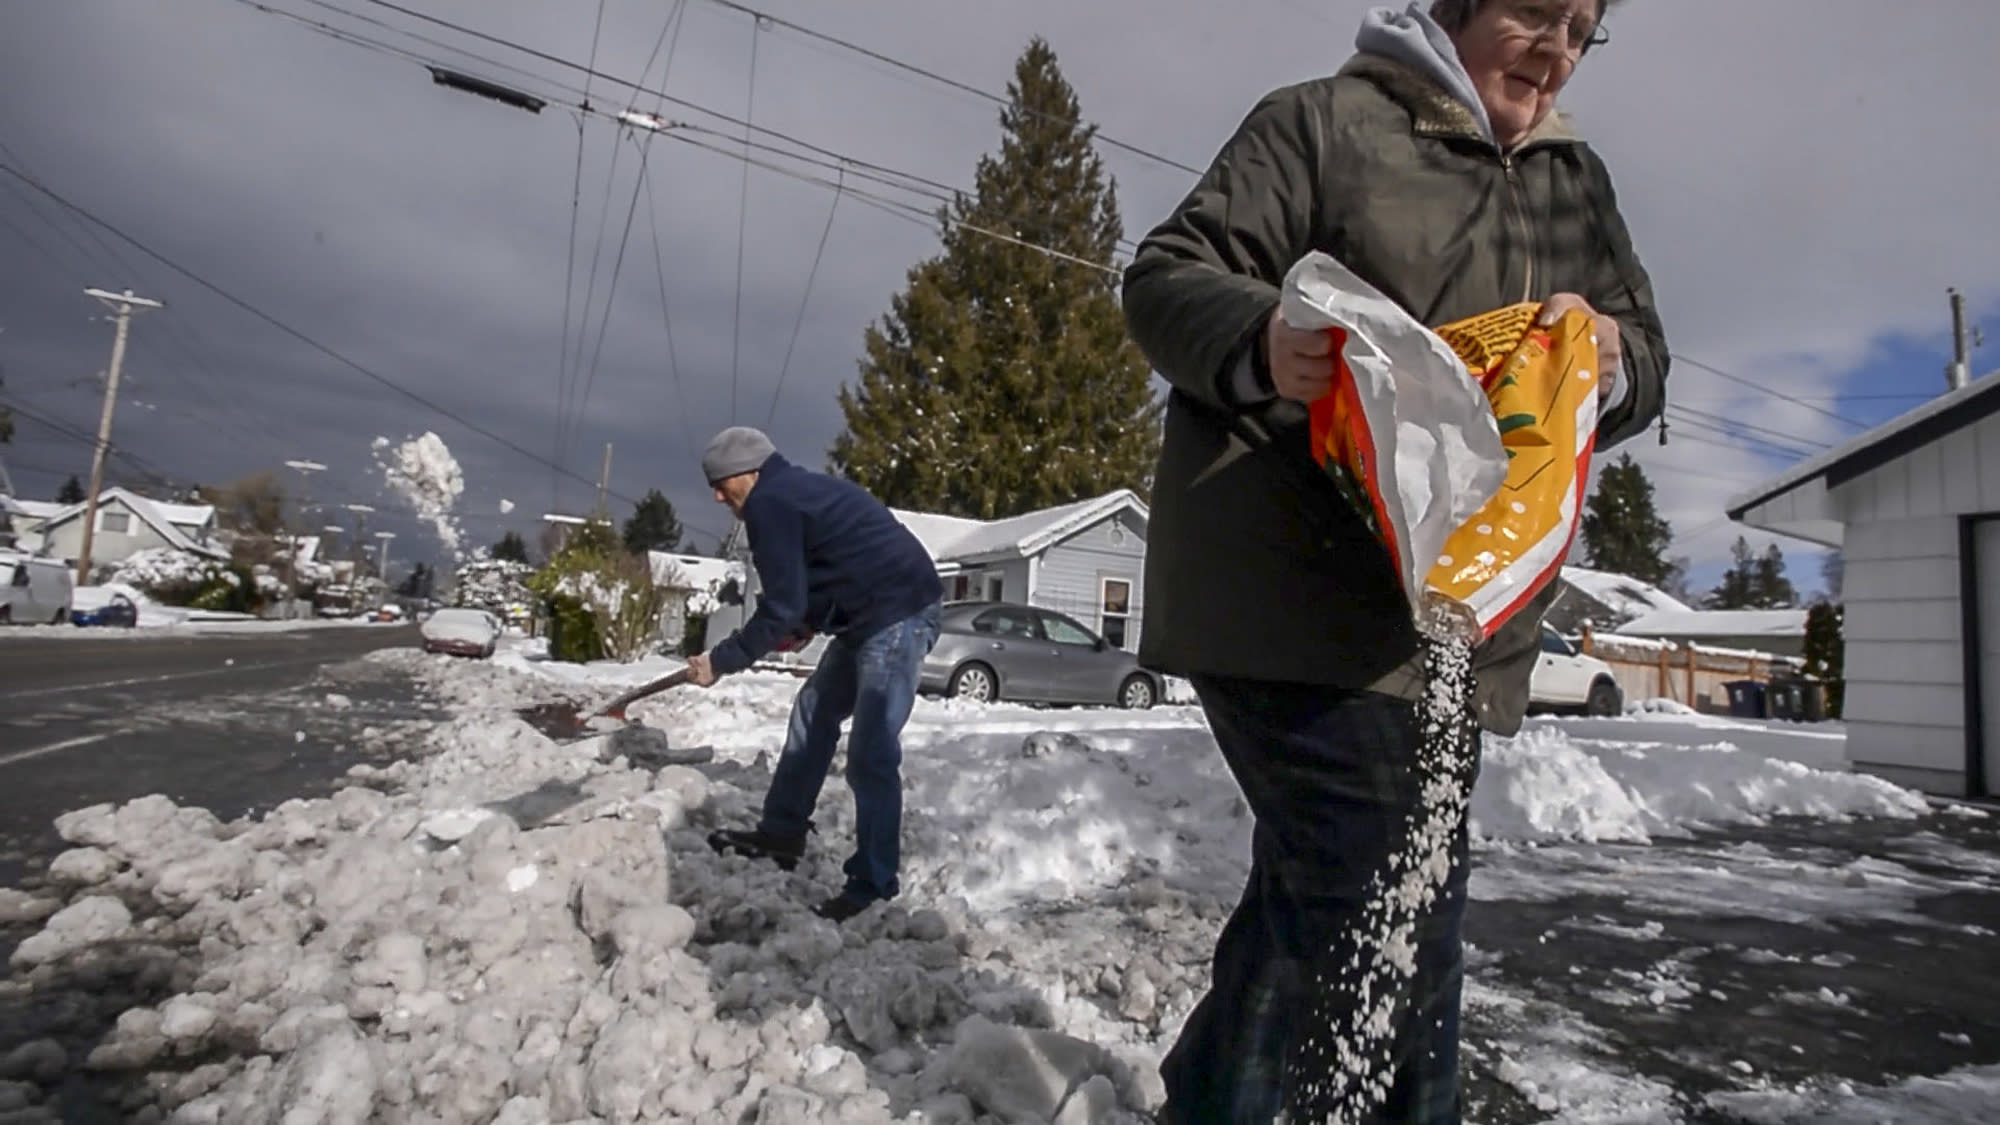 Sue Horgan, of Tacoma, salts her driveway as neighbor Michael Dane helps with the shoveling, Sunday, Feb. 10, 2019, in Tacoma, Wash. Pacific Northwest residents who are more accustomed to rain than snow were digging out from a winter storm and bracing for more on Sunday. (Peter Haley/The News Tribune via AP)